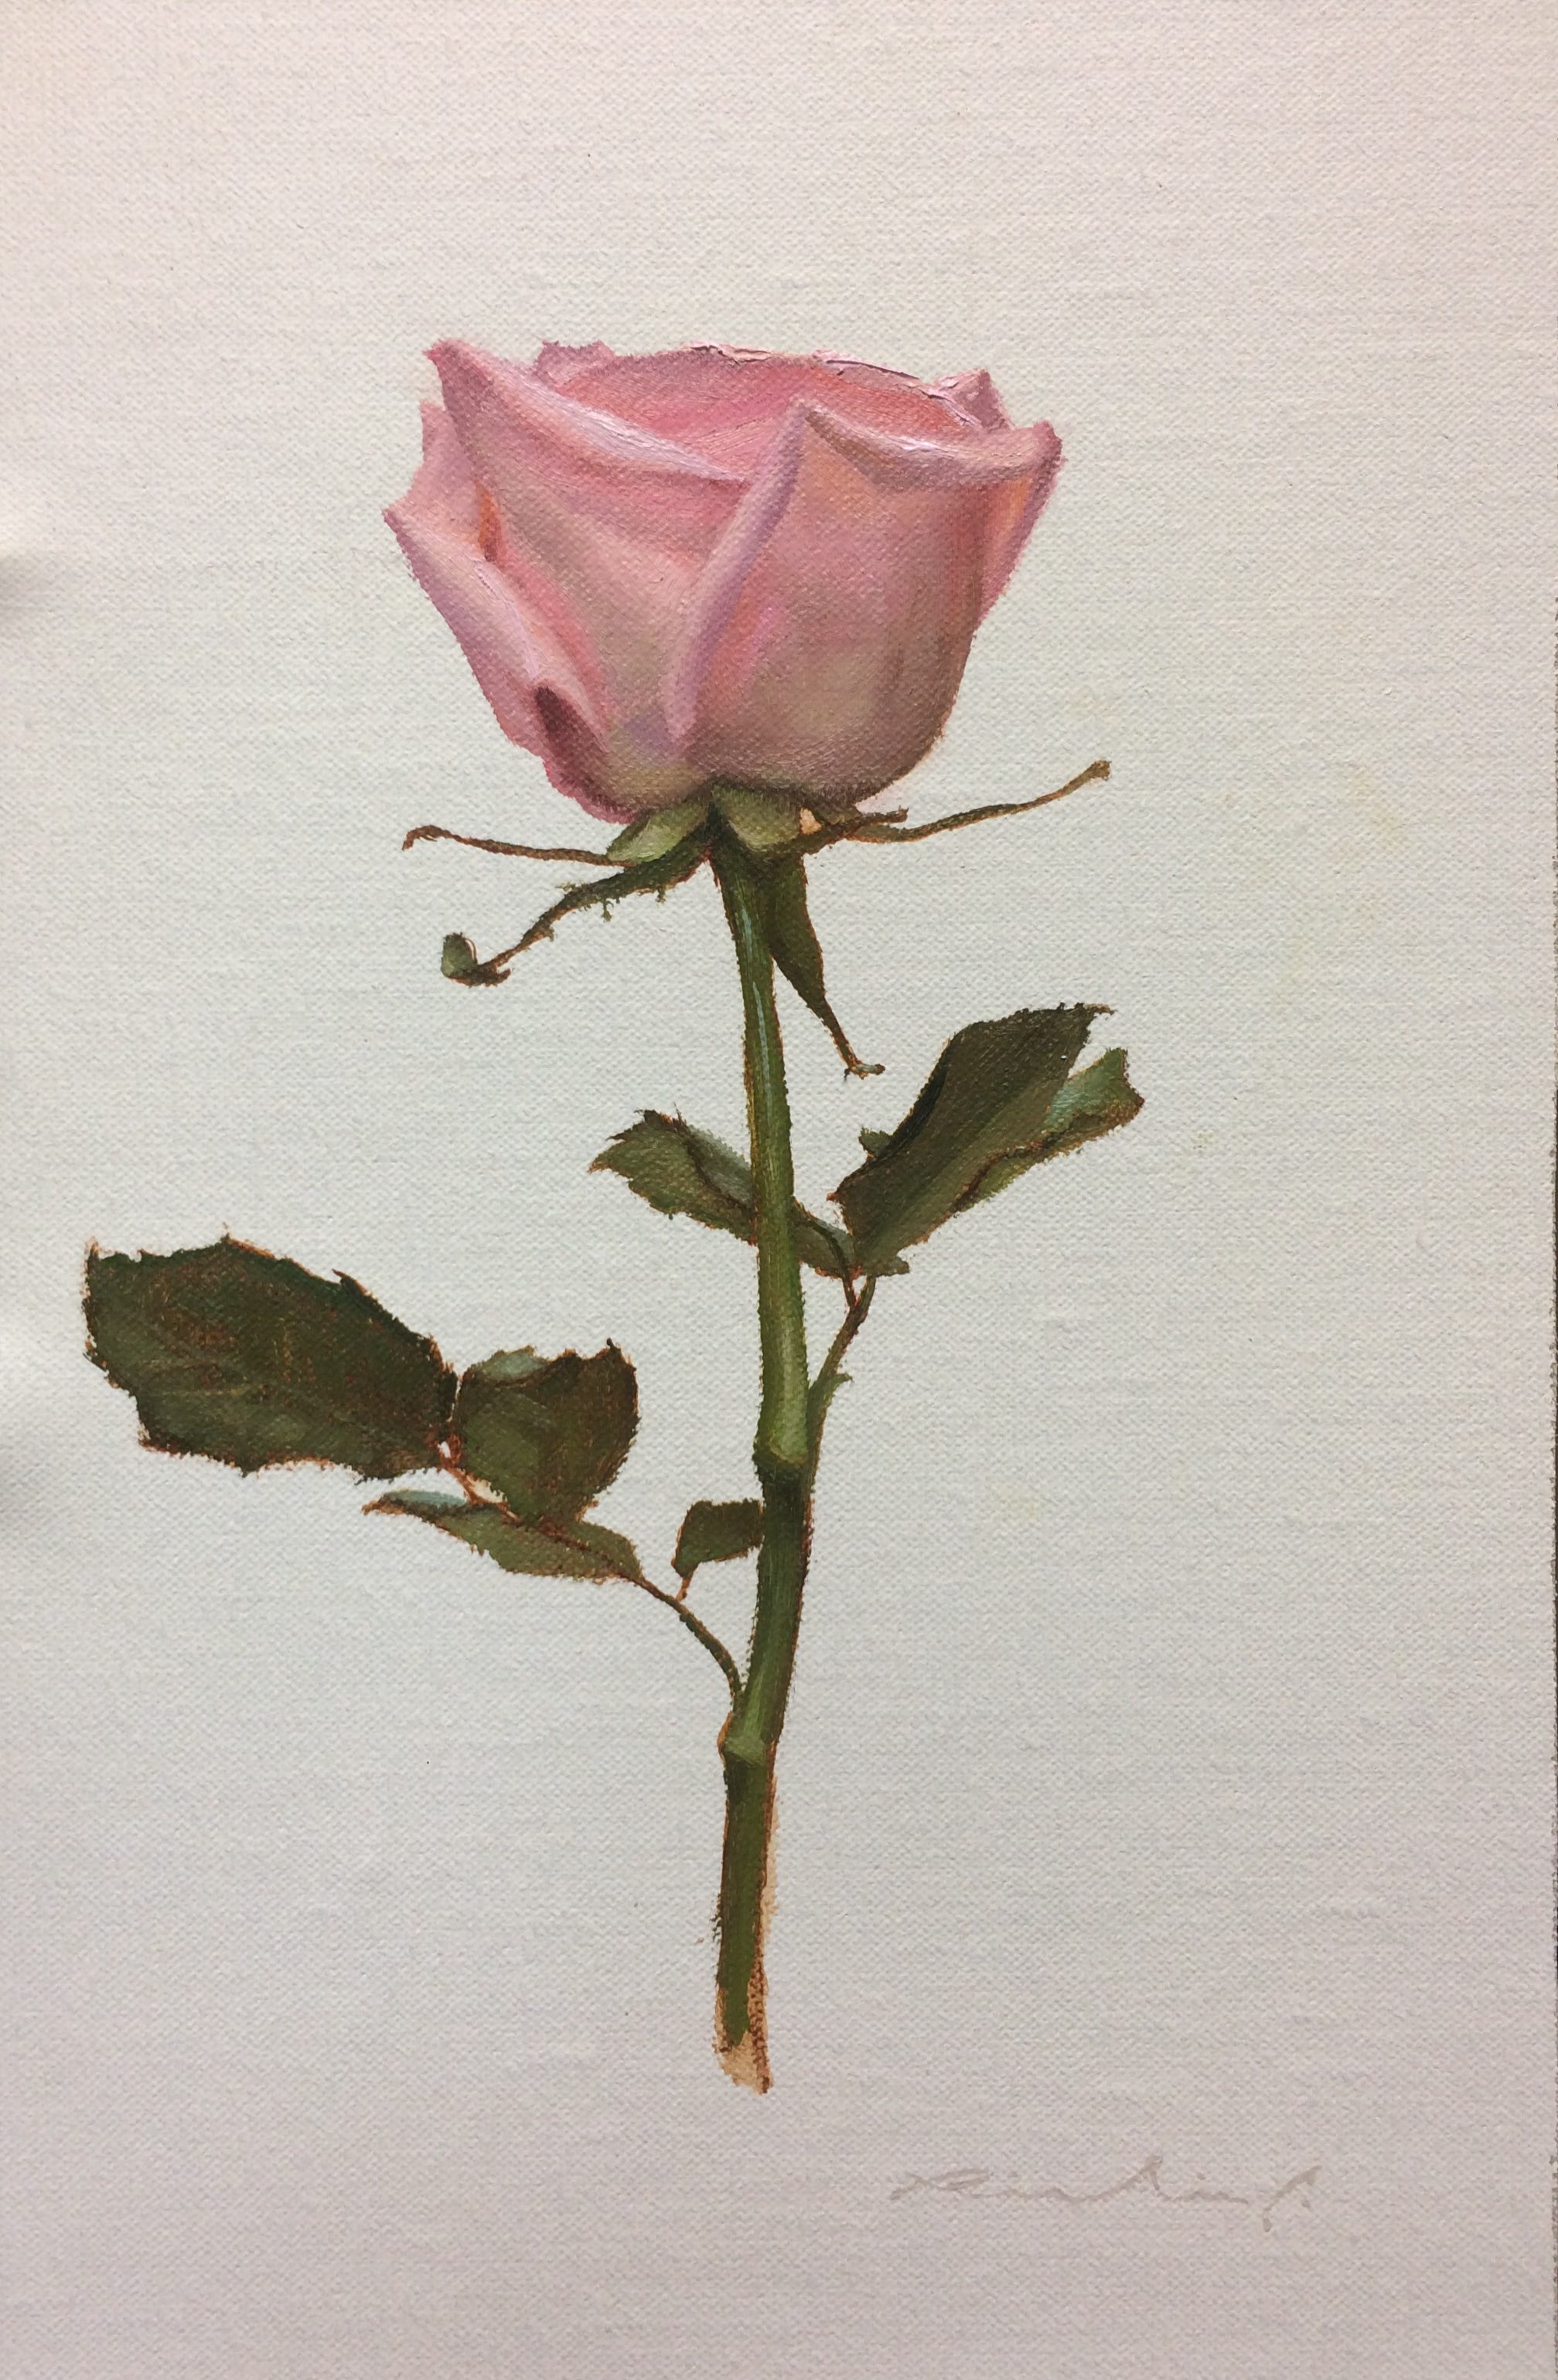 """Bed of Roses 1""  $650.00  8 x 12 inches 